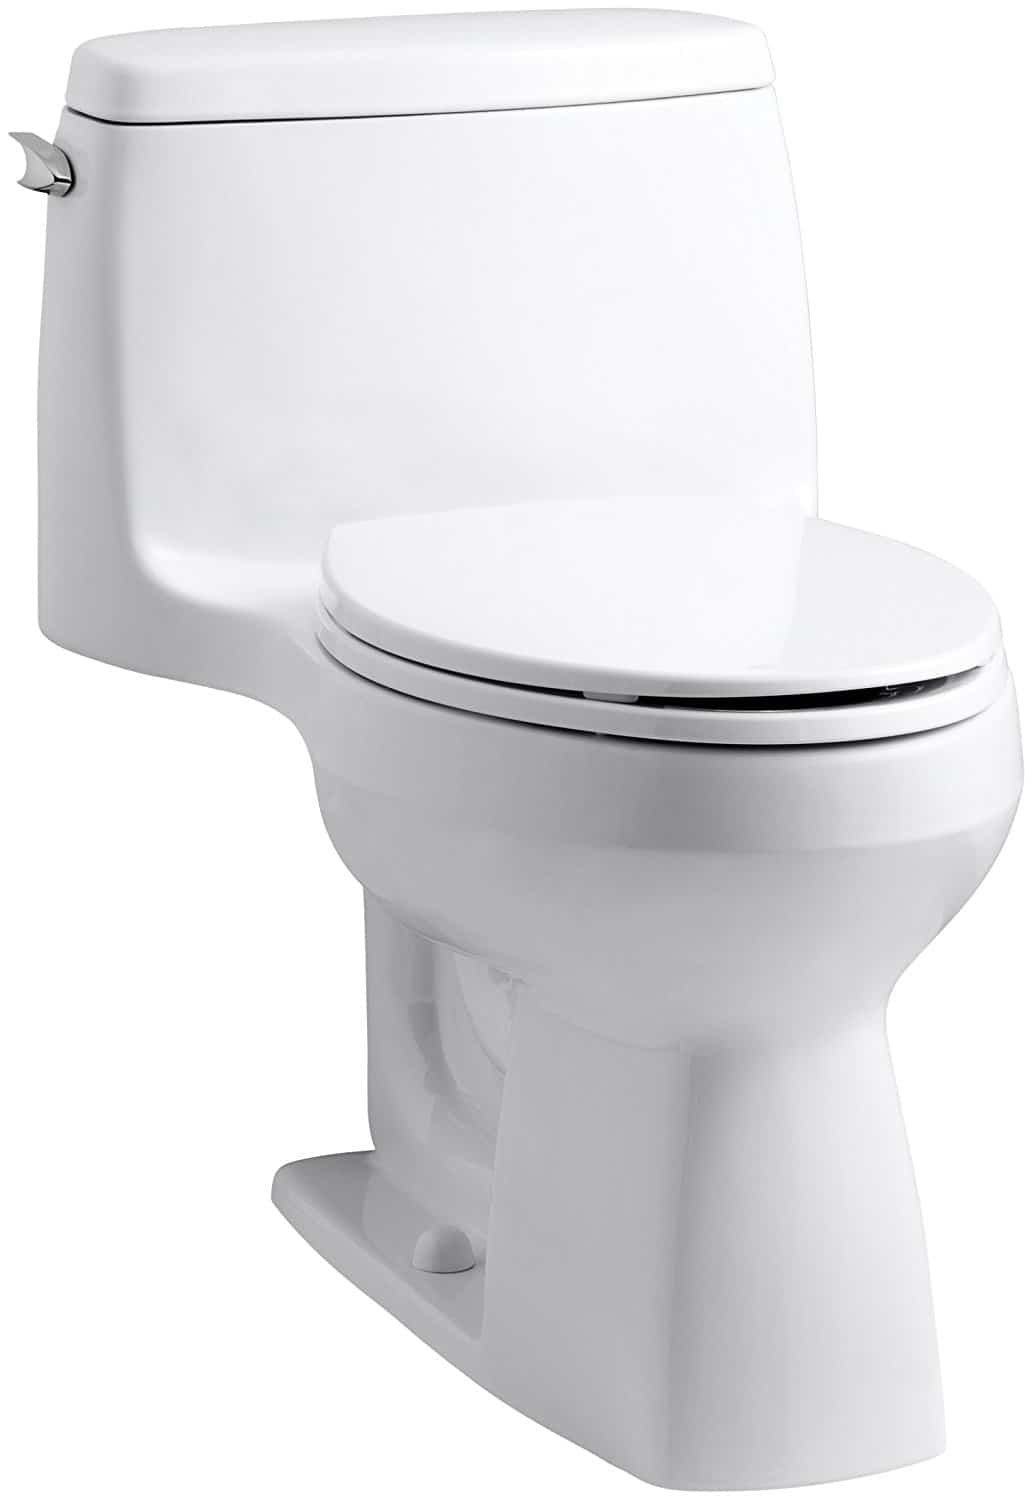 Kohler Santa Rosa Comfort Height Elongated 1.28 GPF Toilet with AquaPiston Flush Technology and Left-Hand Trip Lever